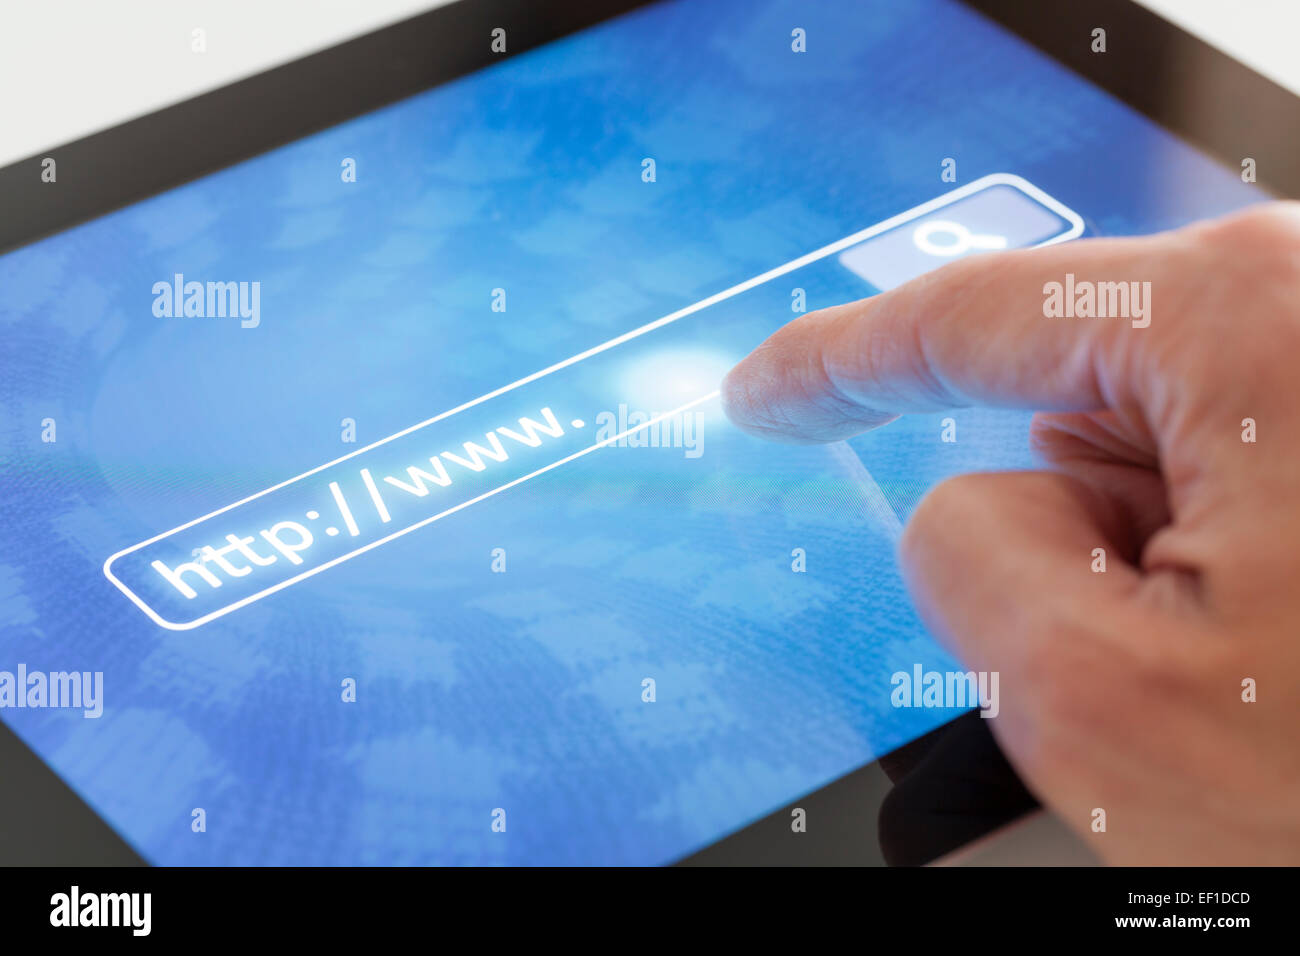 Internet search using a tablet - Stock Image